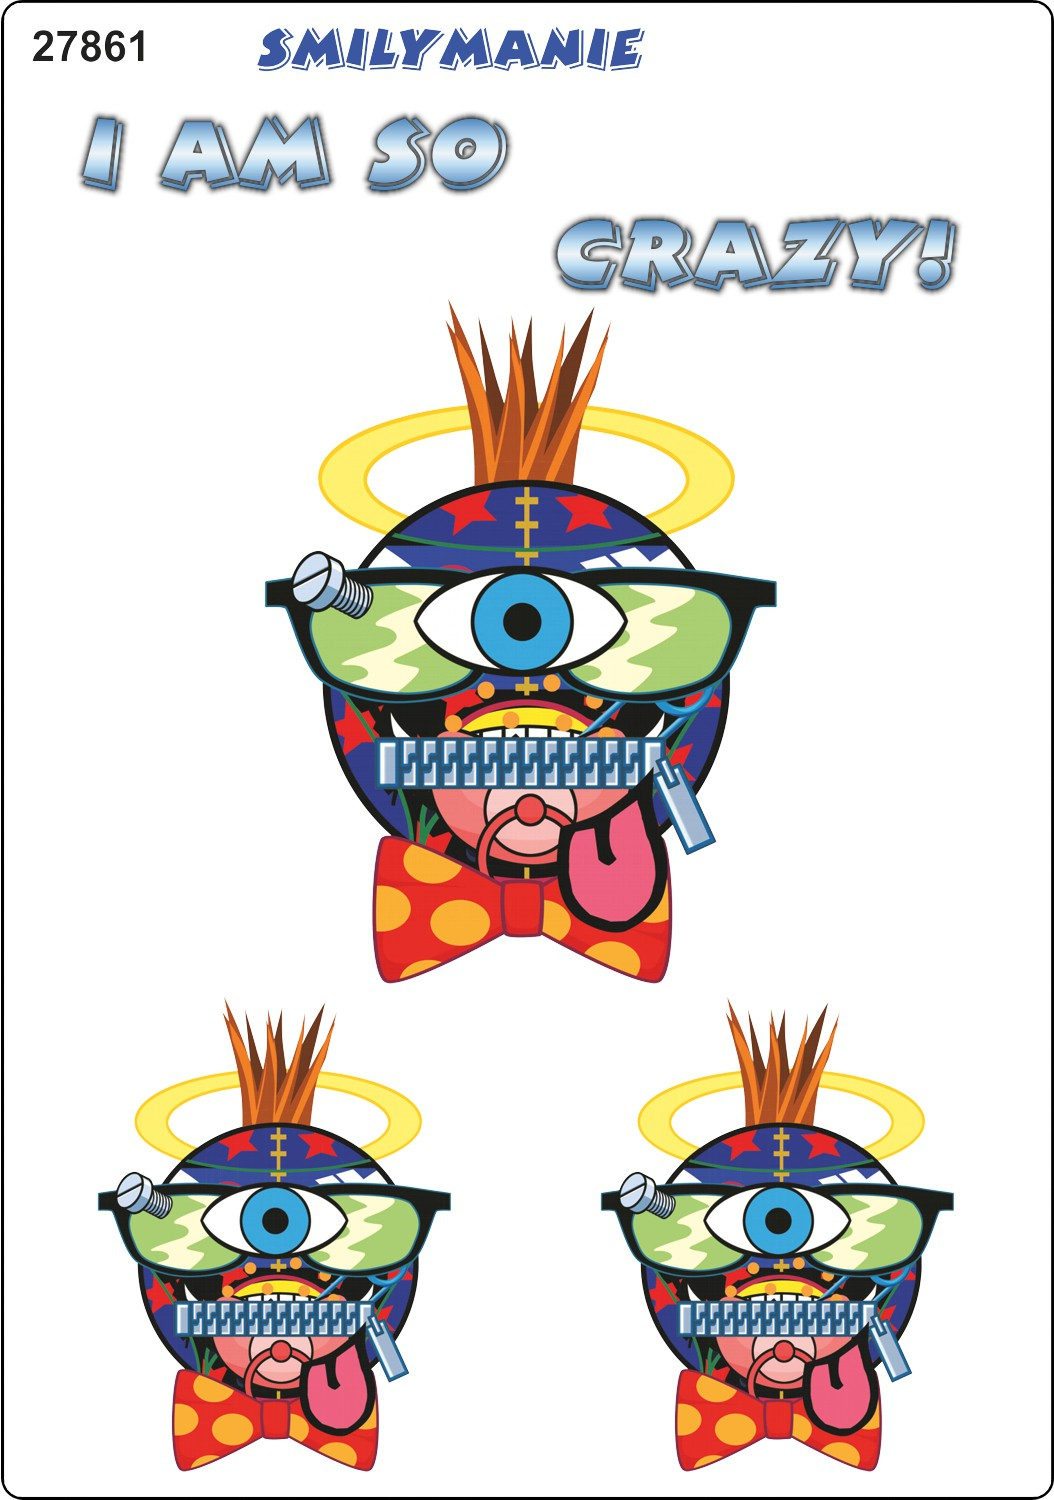 Sticker Smily I am so crazy! set of 3 150 x 105 mm